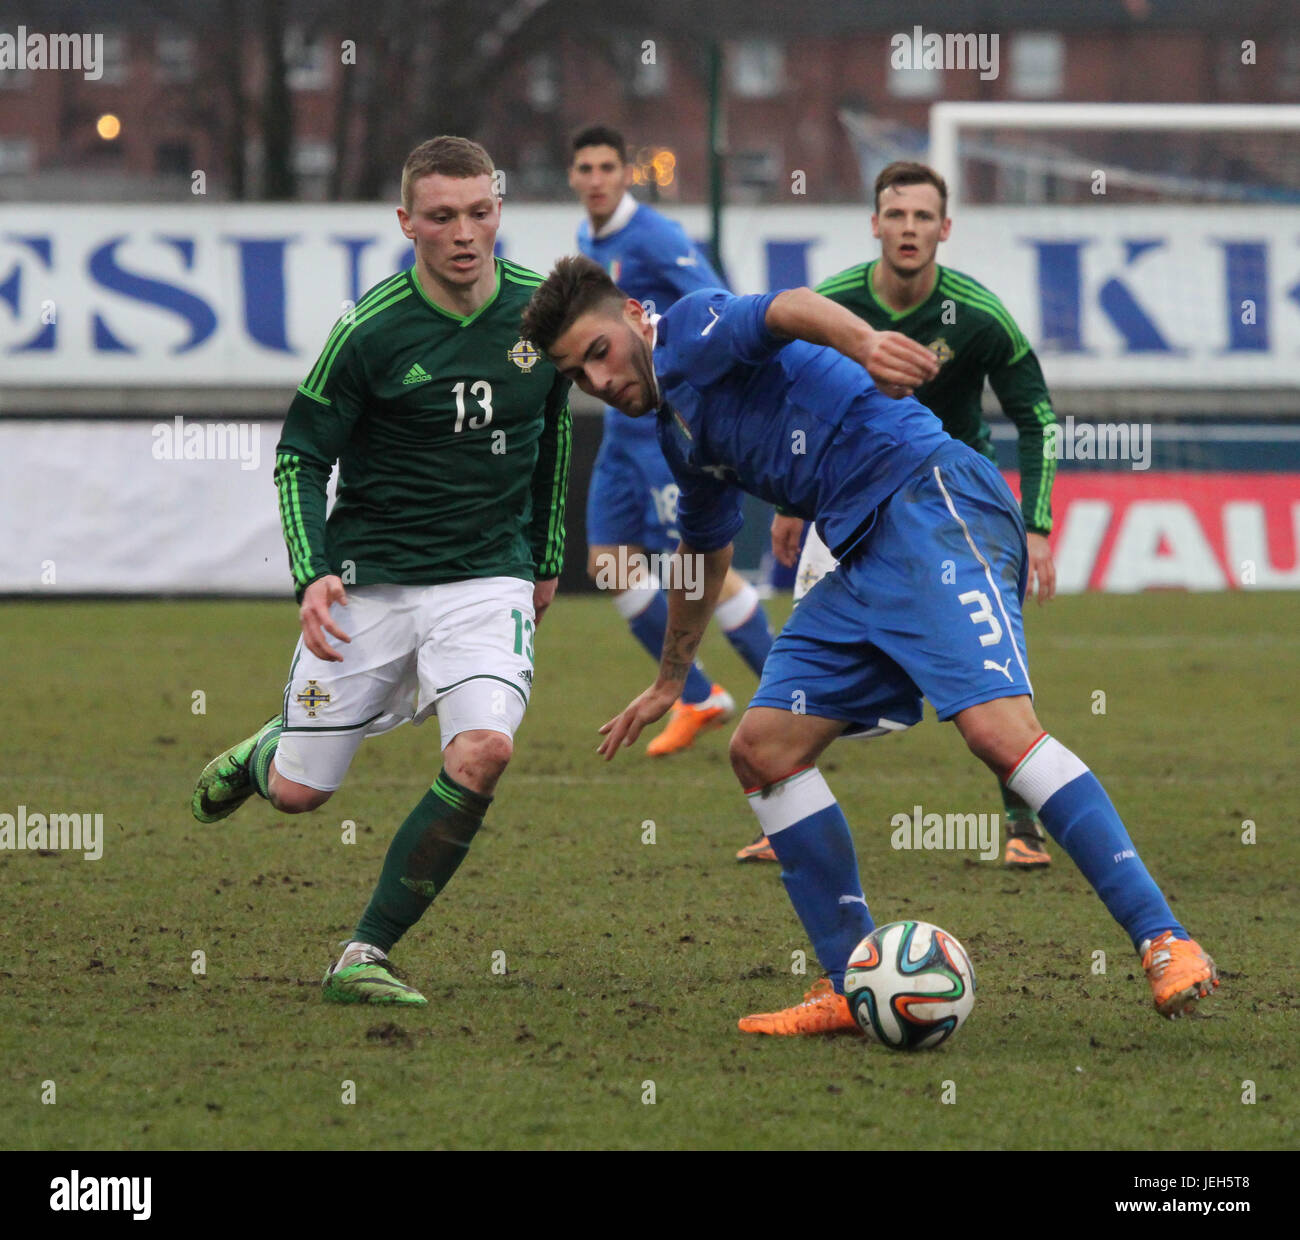 Mourneview Park, Lurgan. 05 March 2014. UEFA U21 Championship 2013-2015 Group 9 - Northern Ireland 0 Italy 2. Italy's Stock Photo